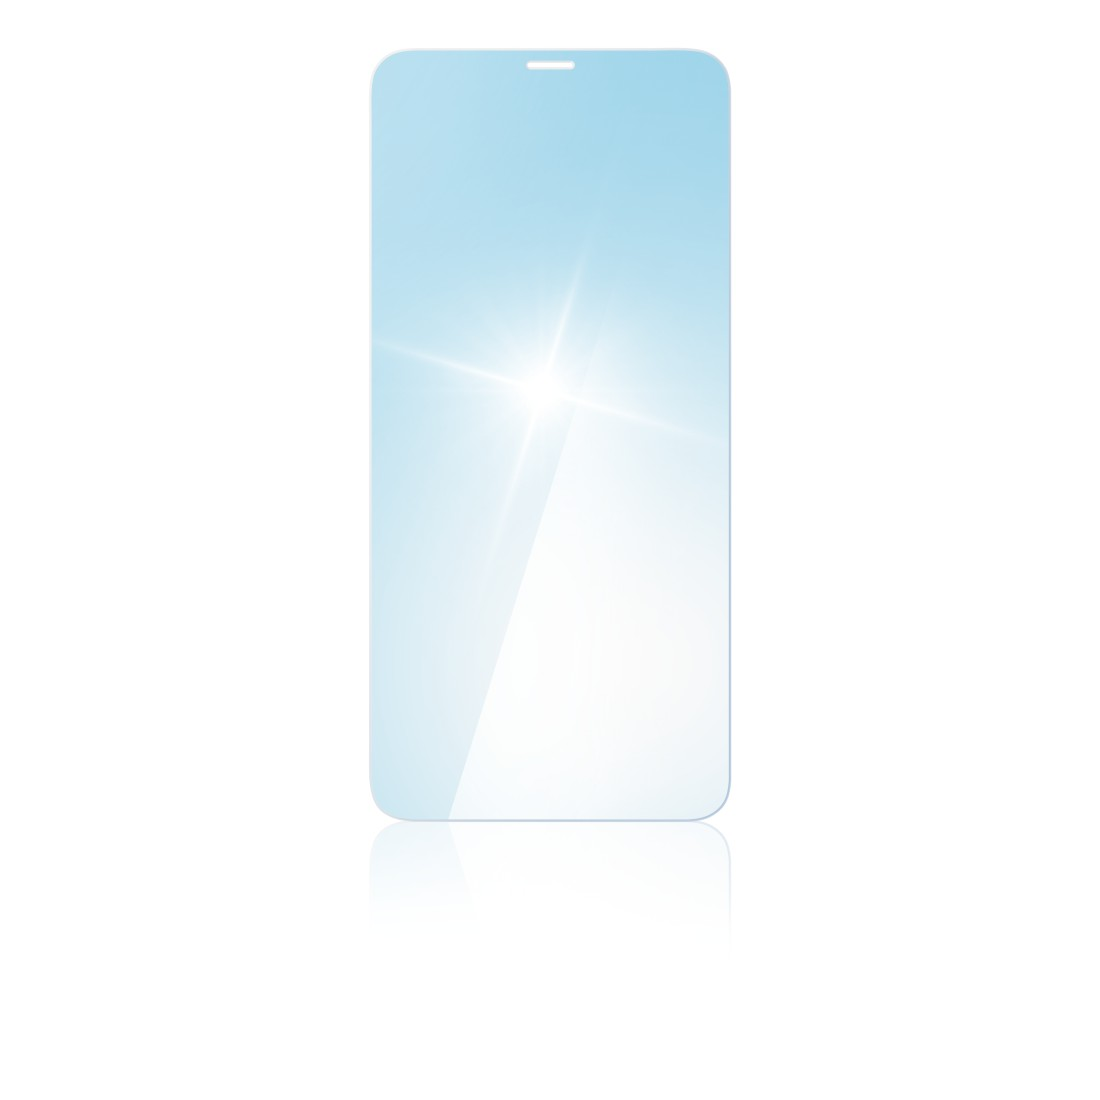 "abx2 High-Res Image 2 - Hama, ""Anti-Bluelight"" Real Glass Screen Protector for Apple iPhone X/XS/11 Pro"